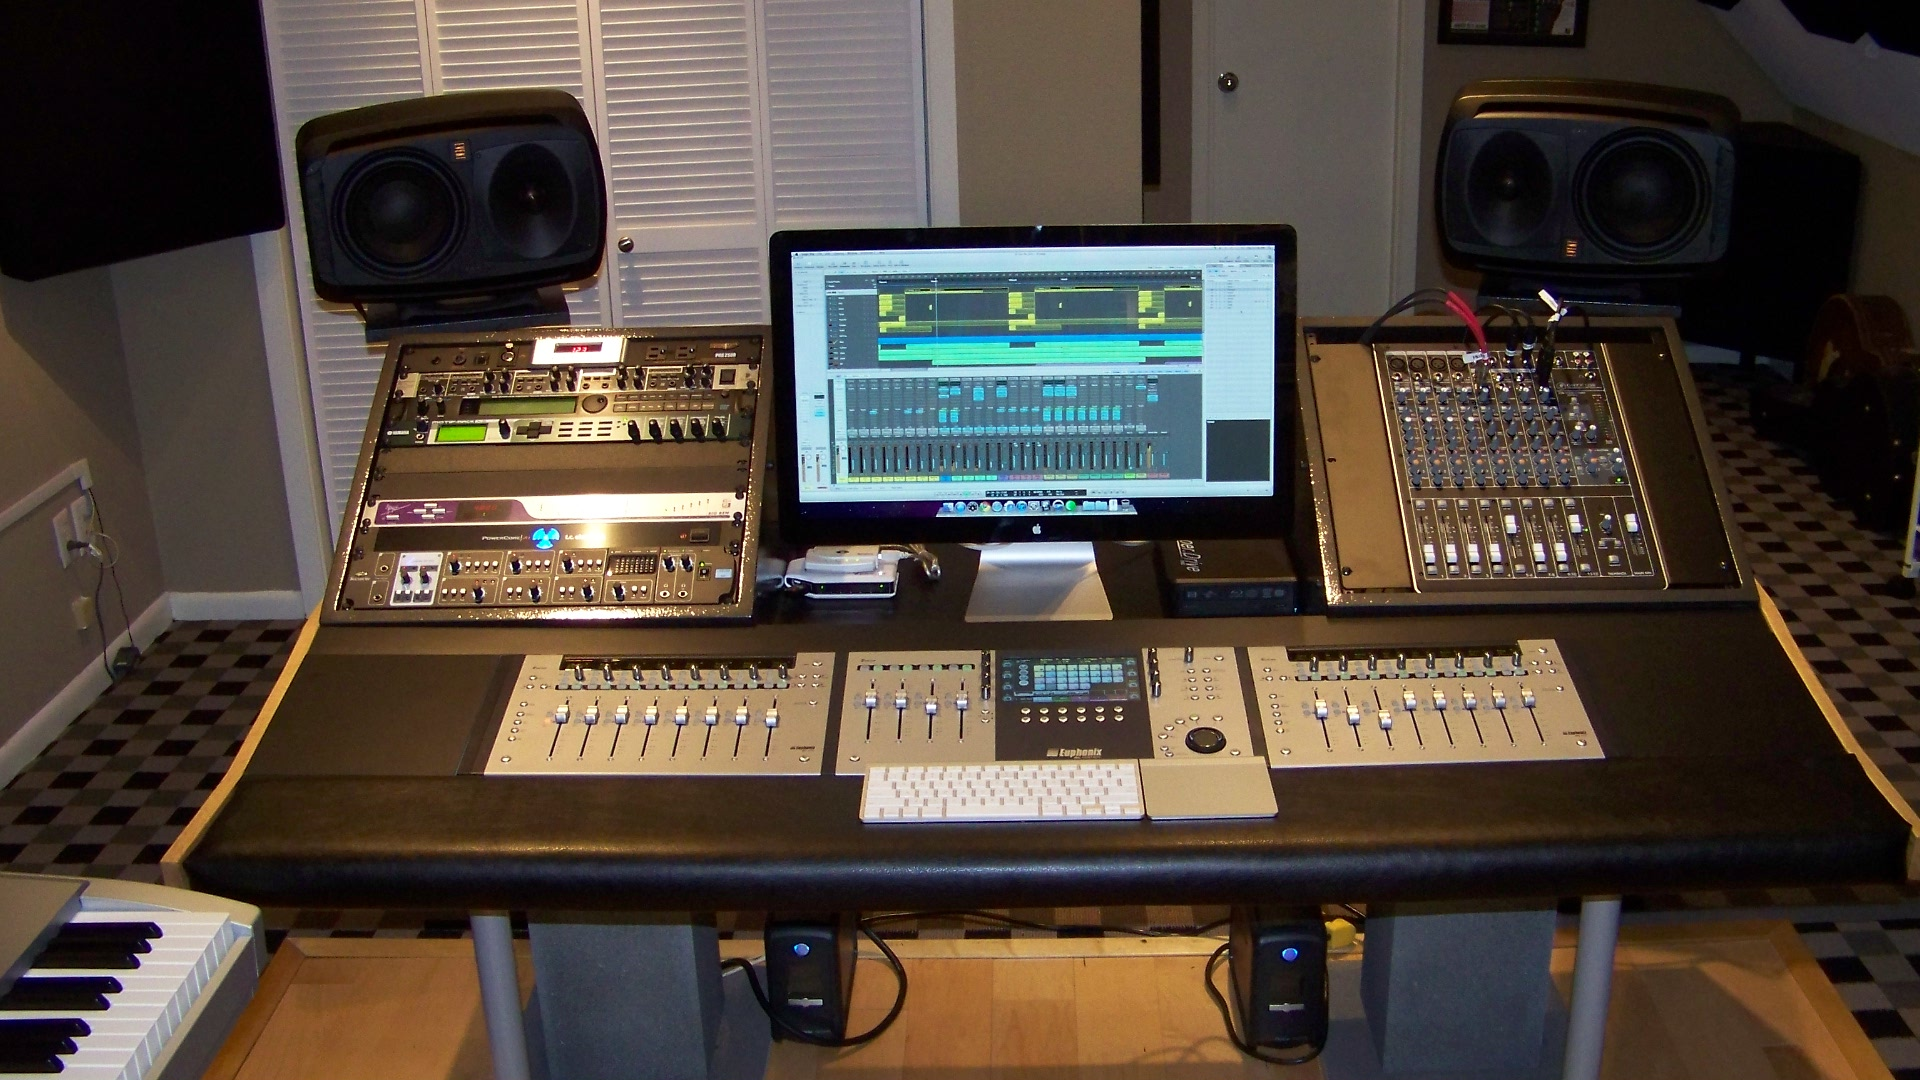 1000 images about studio photos on pinterest recording studio home recording studios and - Home studio ...